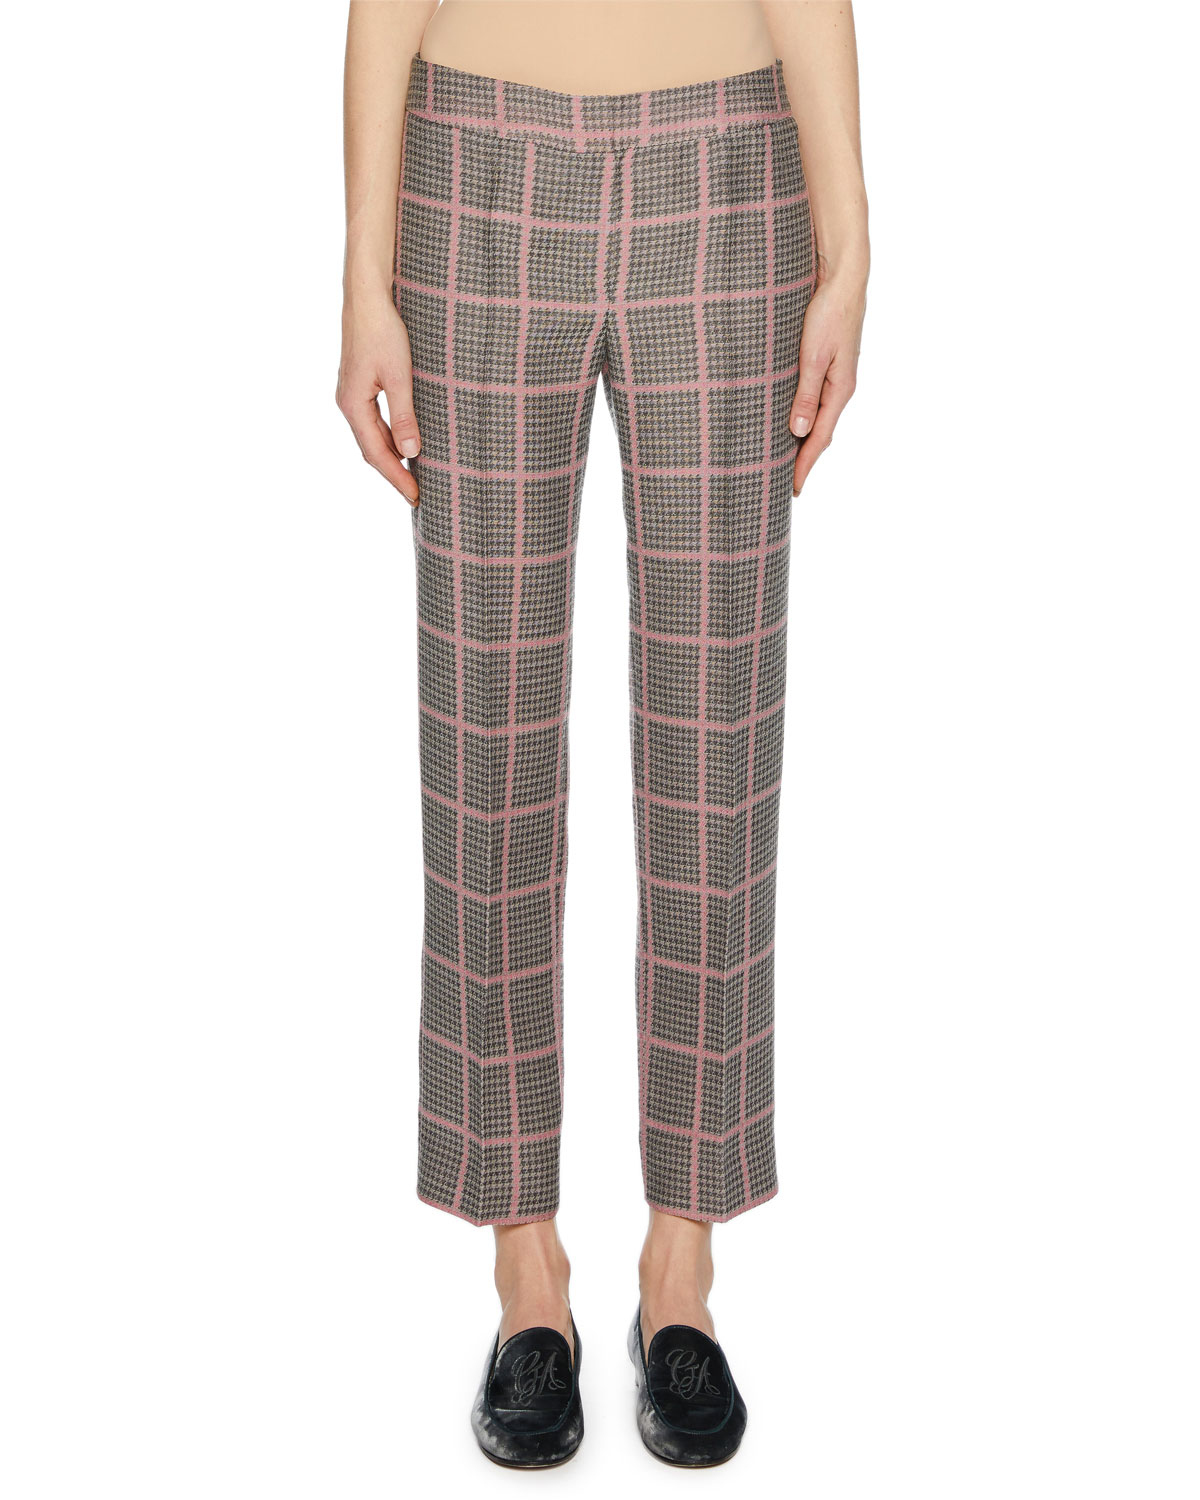 Texas Tech Classic Elegance Ladies Ring: Giorgio Armani Straight-Leg Plaid Crop Pants